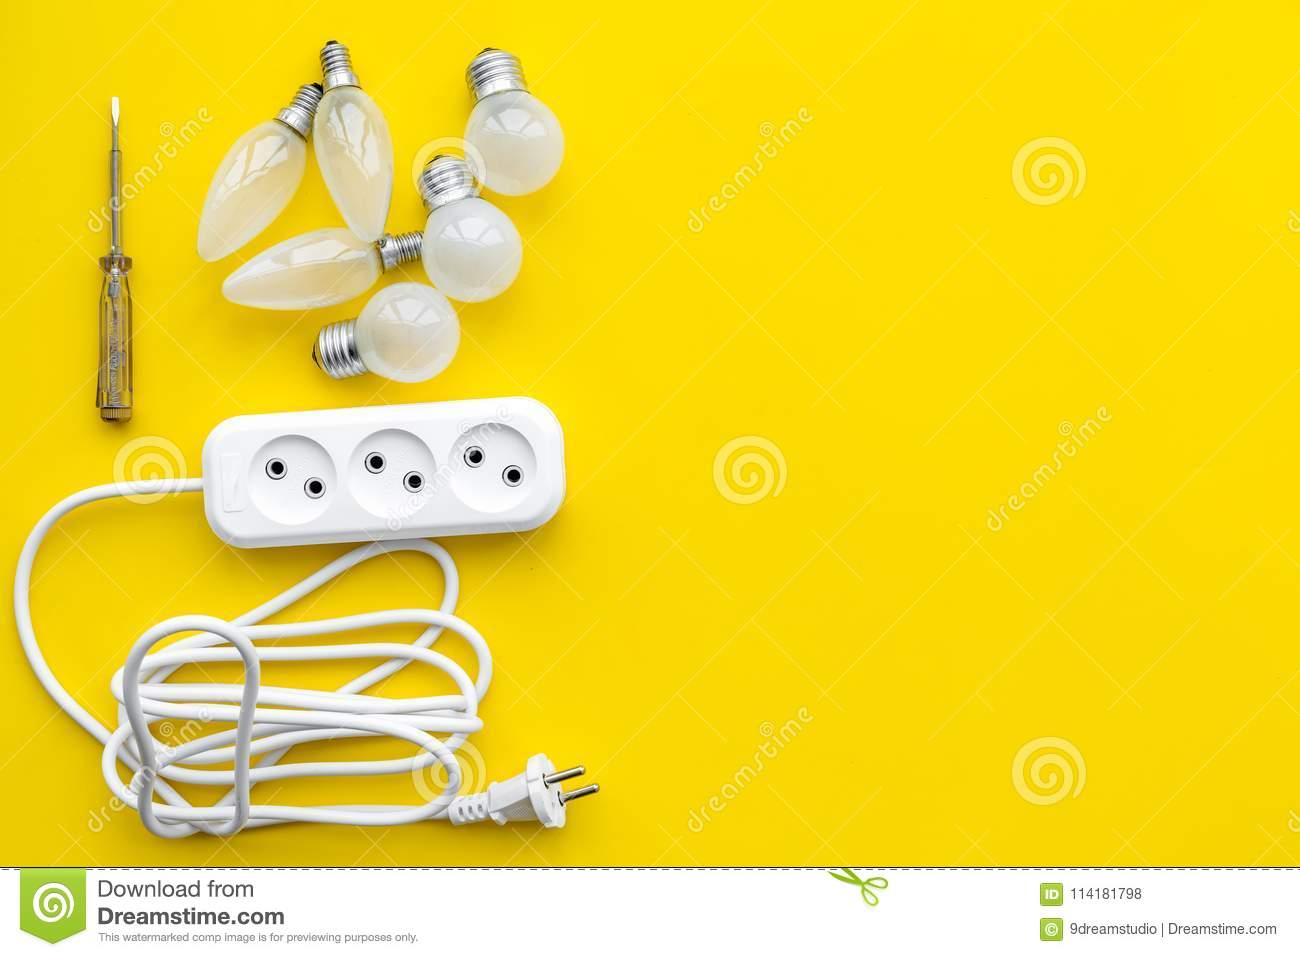 Electrical Installation Wiring Works Bulbs And Socket Outlet On Power Yellow Background Top View Copy